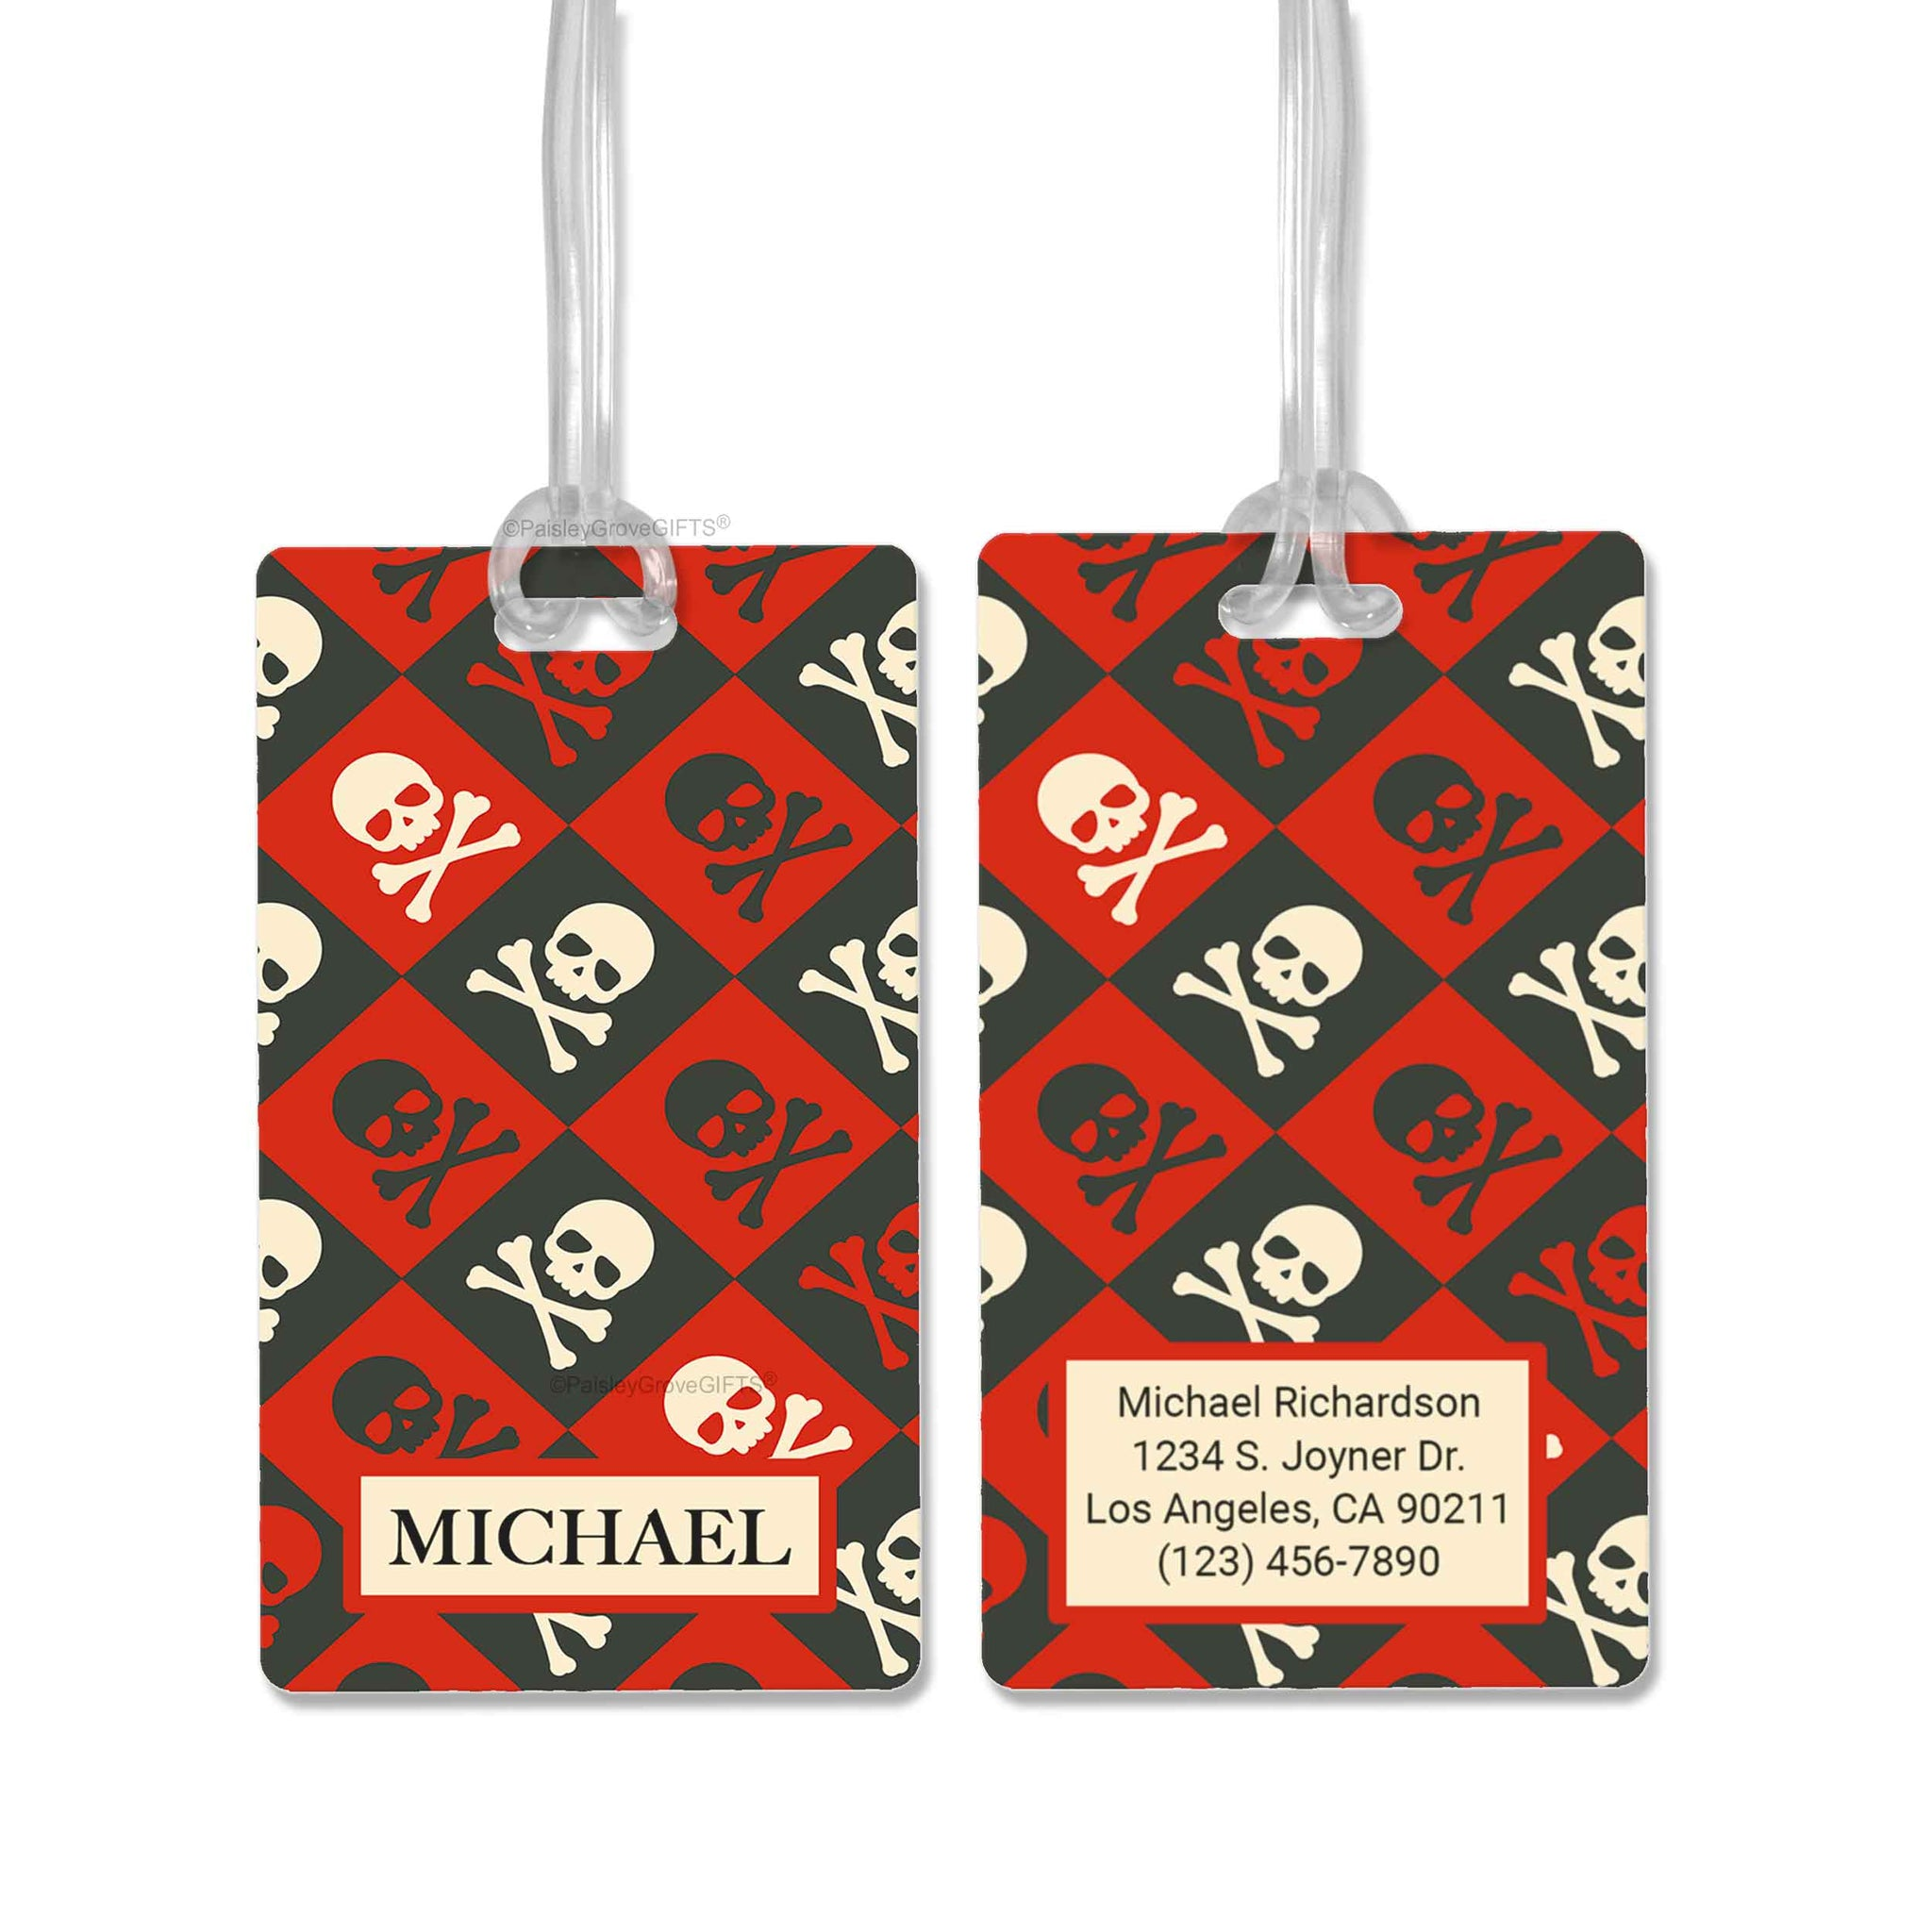 CopyrightPaisleyGroveGIFTS S152b1 Personalized luggage tag black and red pirates skull and bones